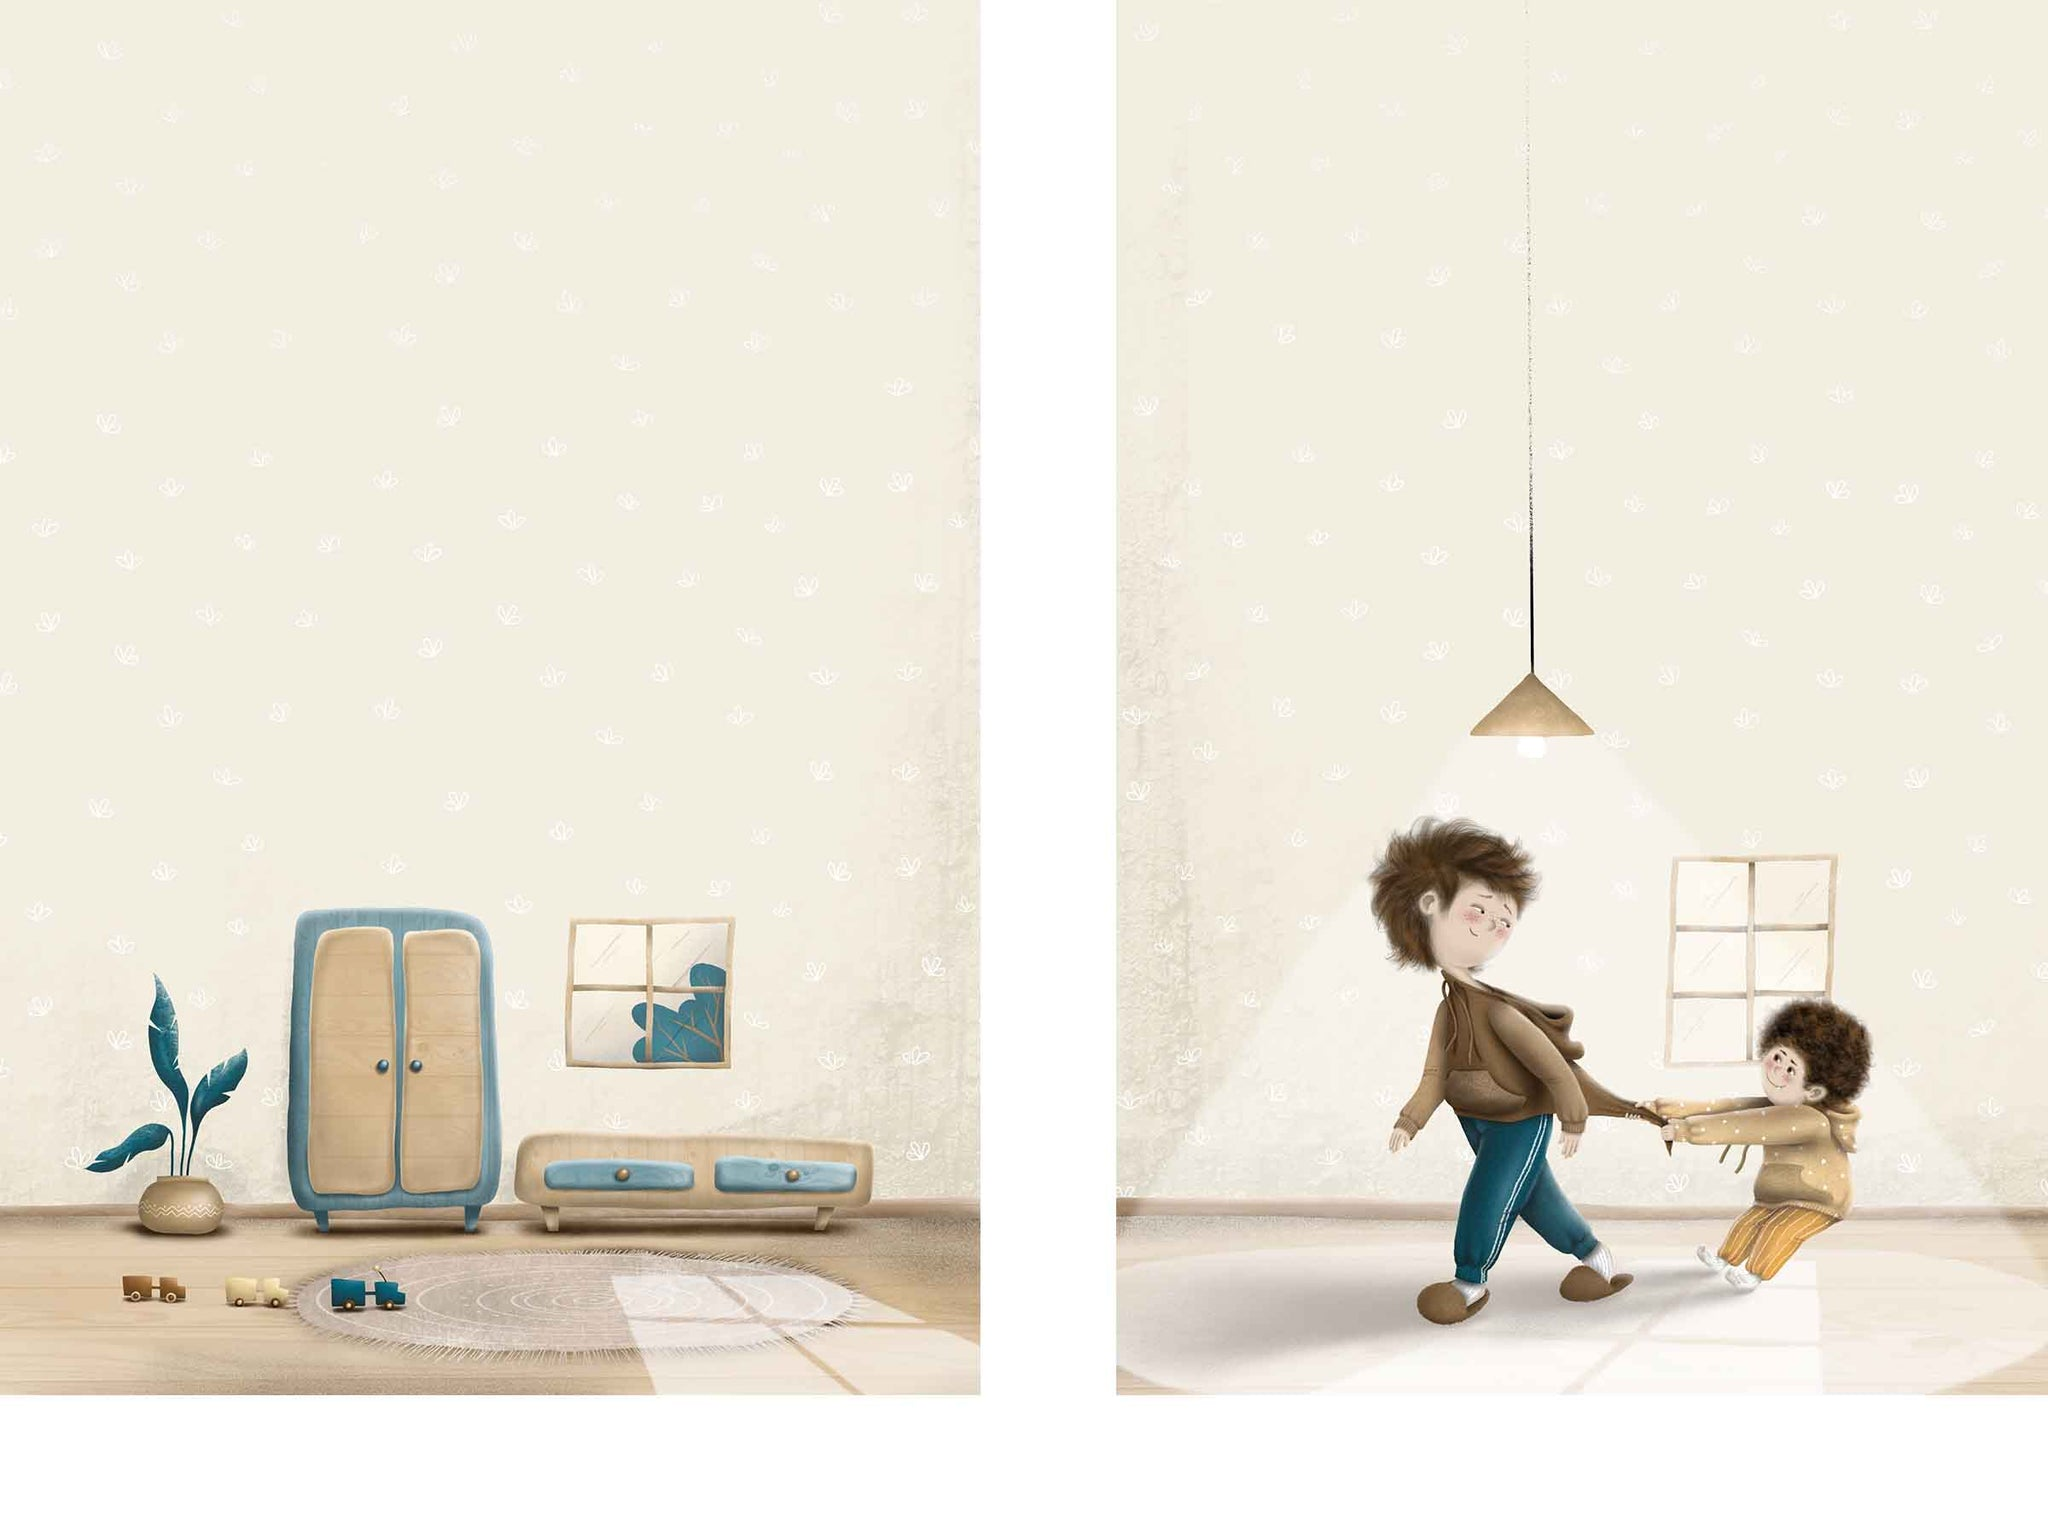 Two illustrations for kids, left: a stylized living room with a plant and toys on the floor, right: two little brothers, small one pulling the big one for his sweater, behind them is a window